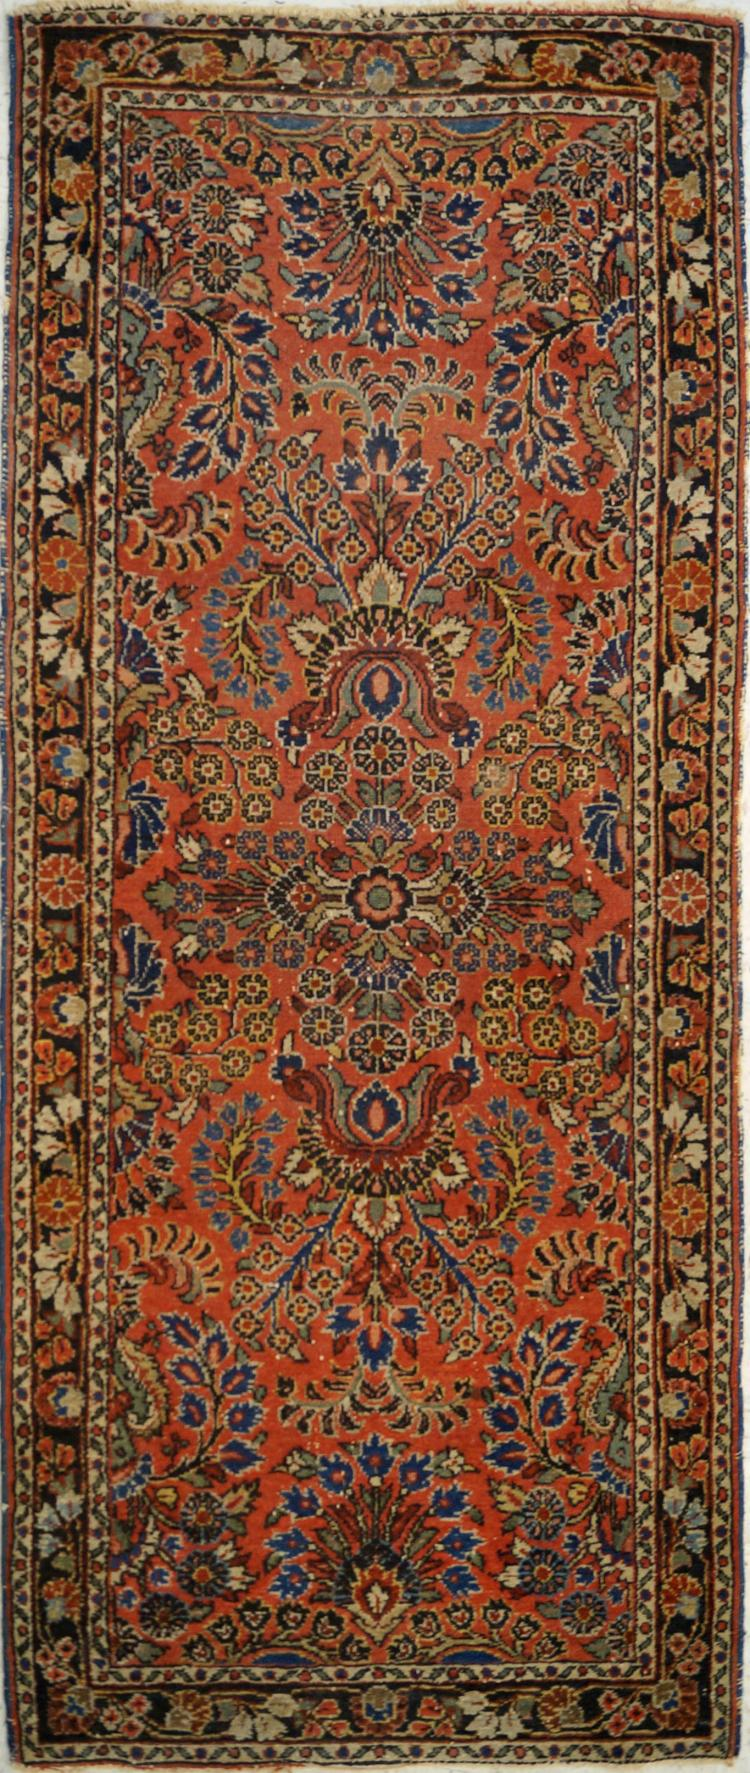 ANTIQUE HAMADAN CORRIDOR RUG. 2'9